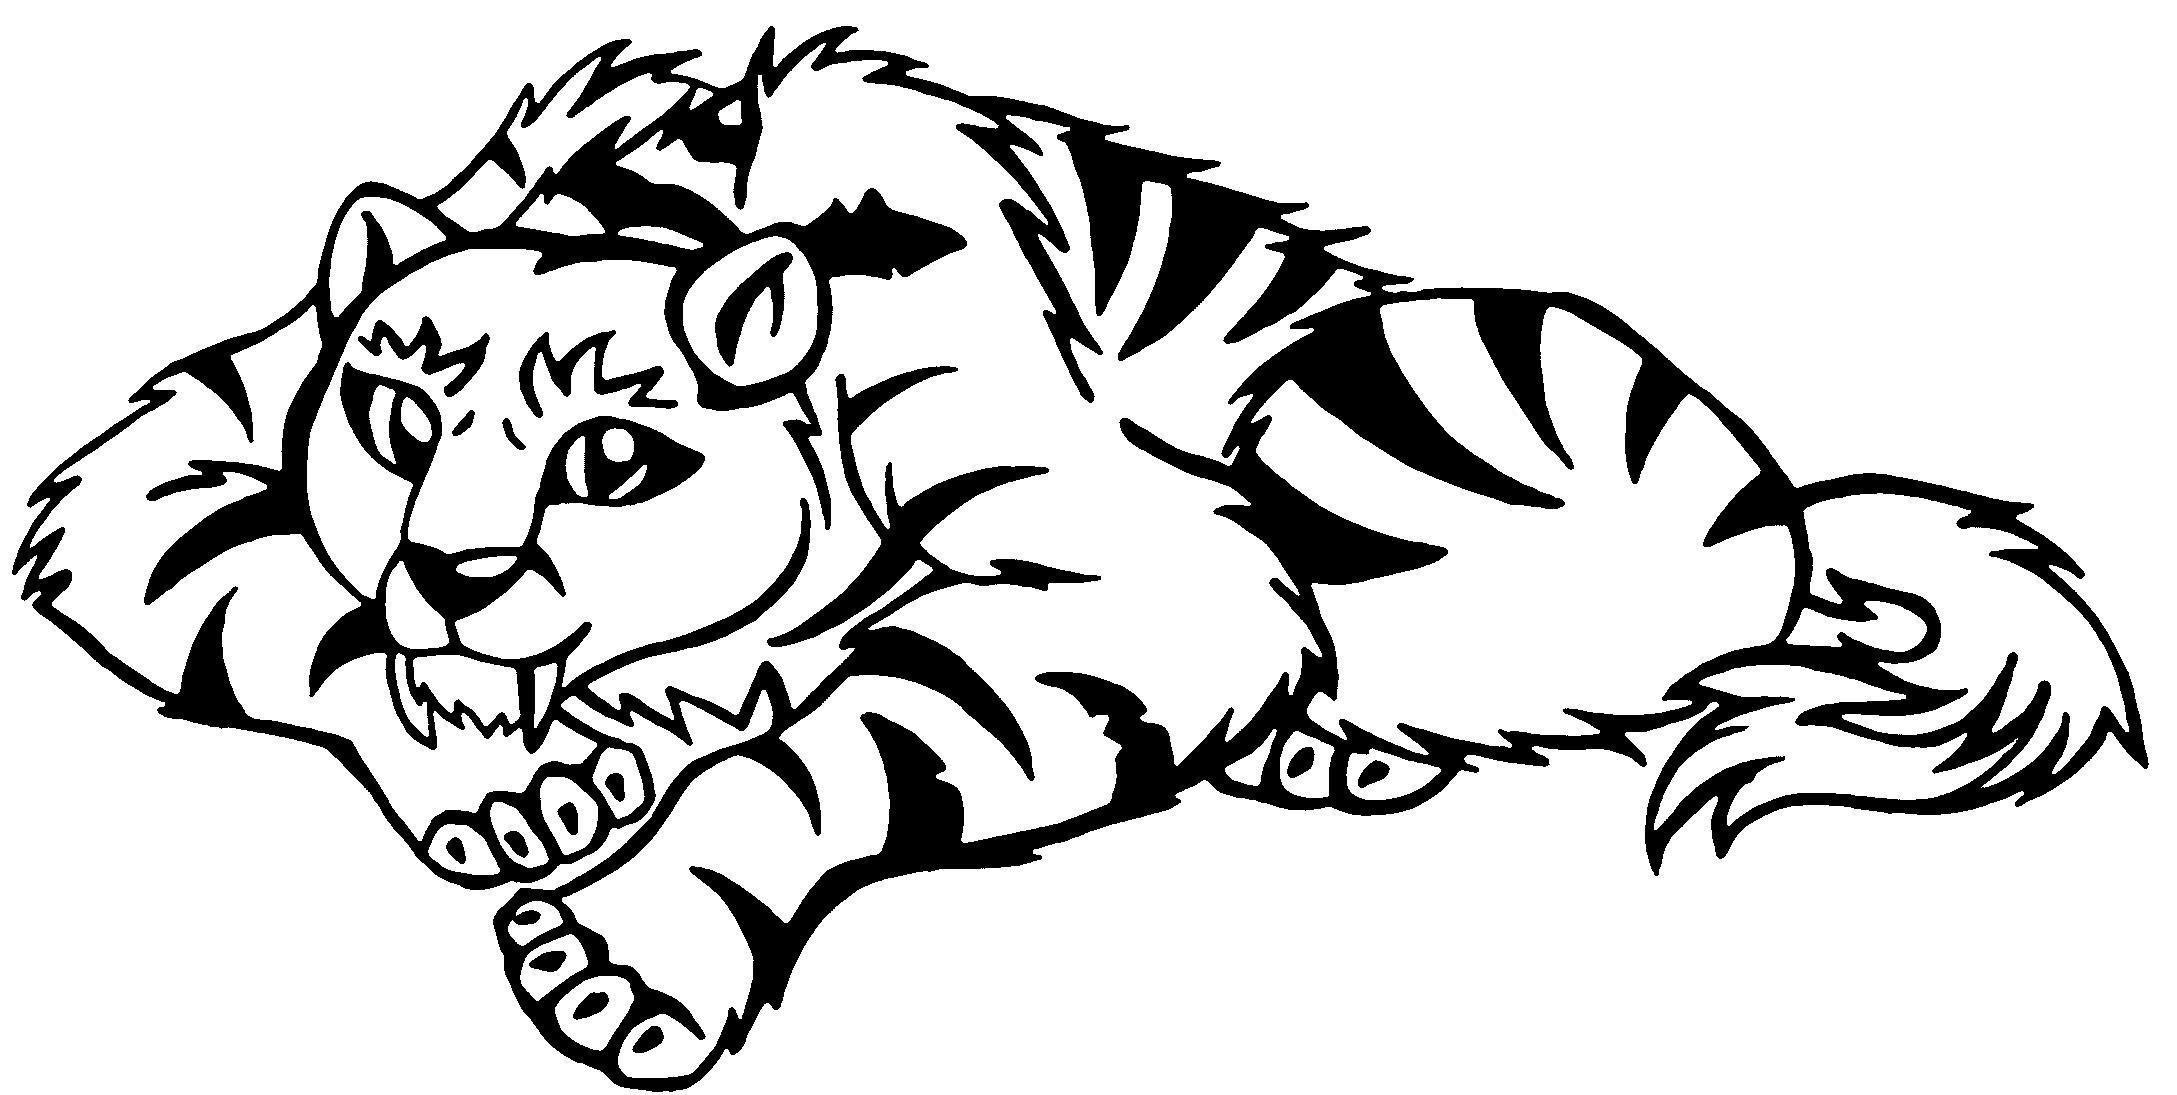 saber tooth coloring pages | Sabre Tooth Tiger Drawing at GetDrawings.com | Free for ...